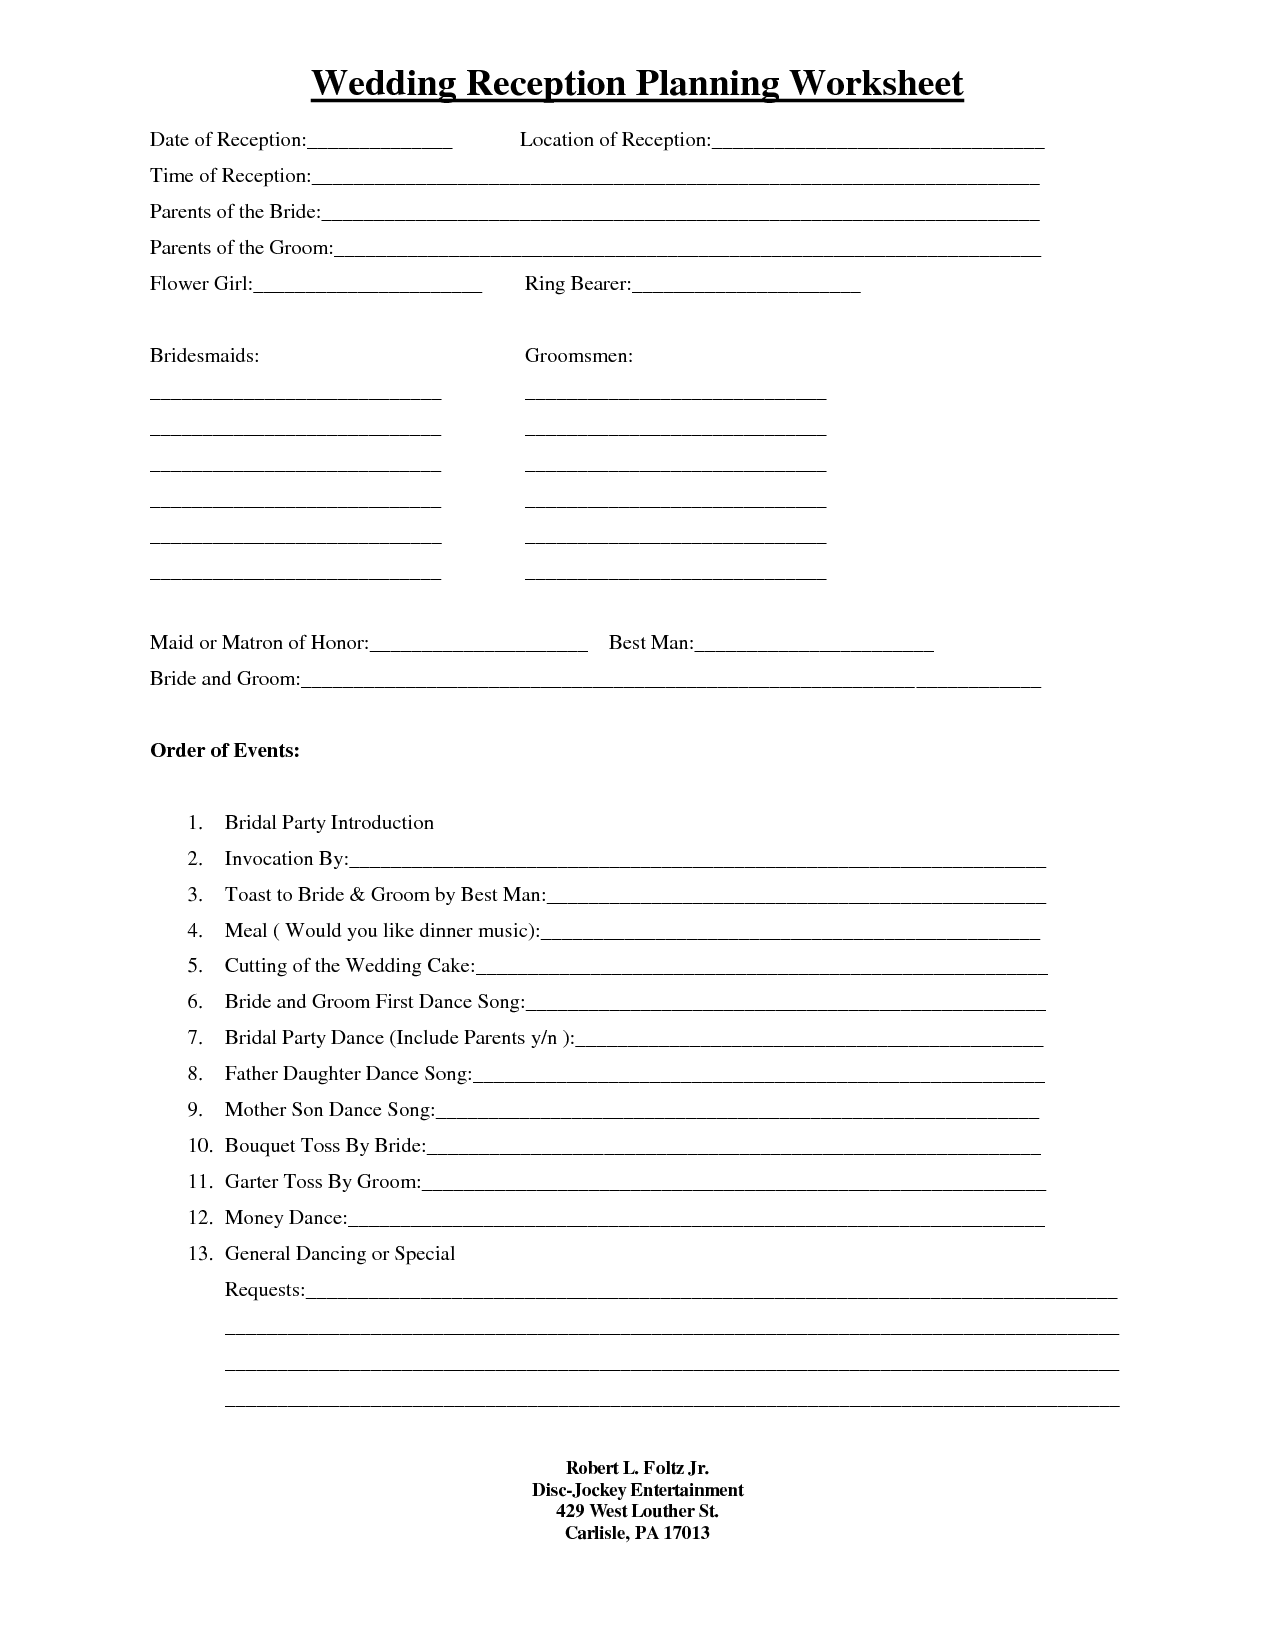 Wedding Reception Planning Worksheets Quelles Astuces Pour